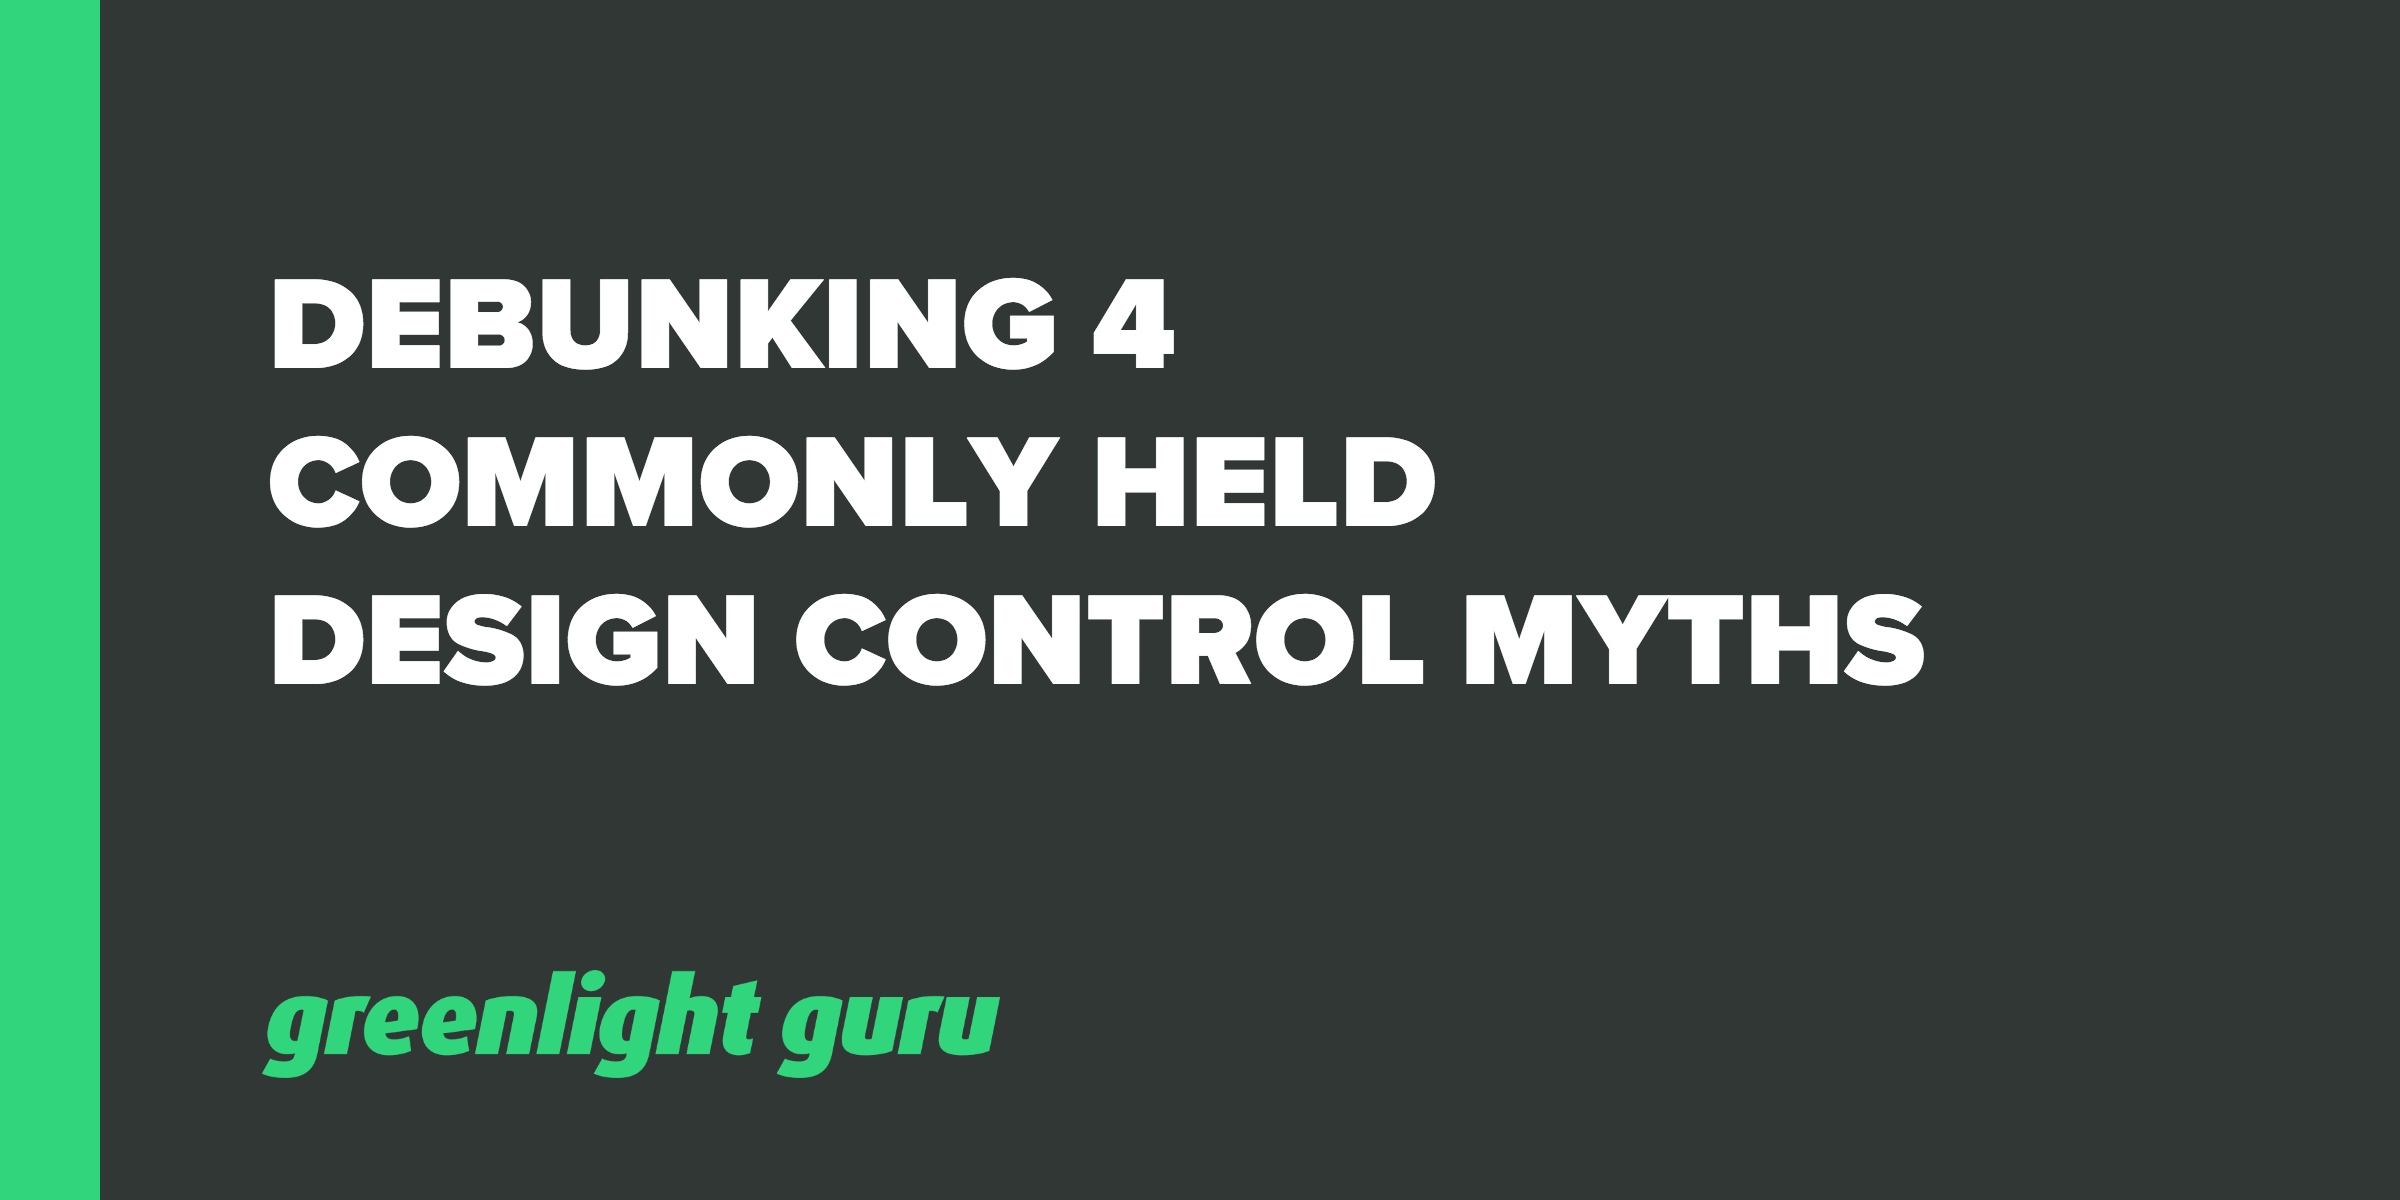 Debunking 4 Commonly Held Design Control Myths - Featured Image